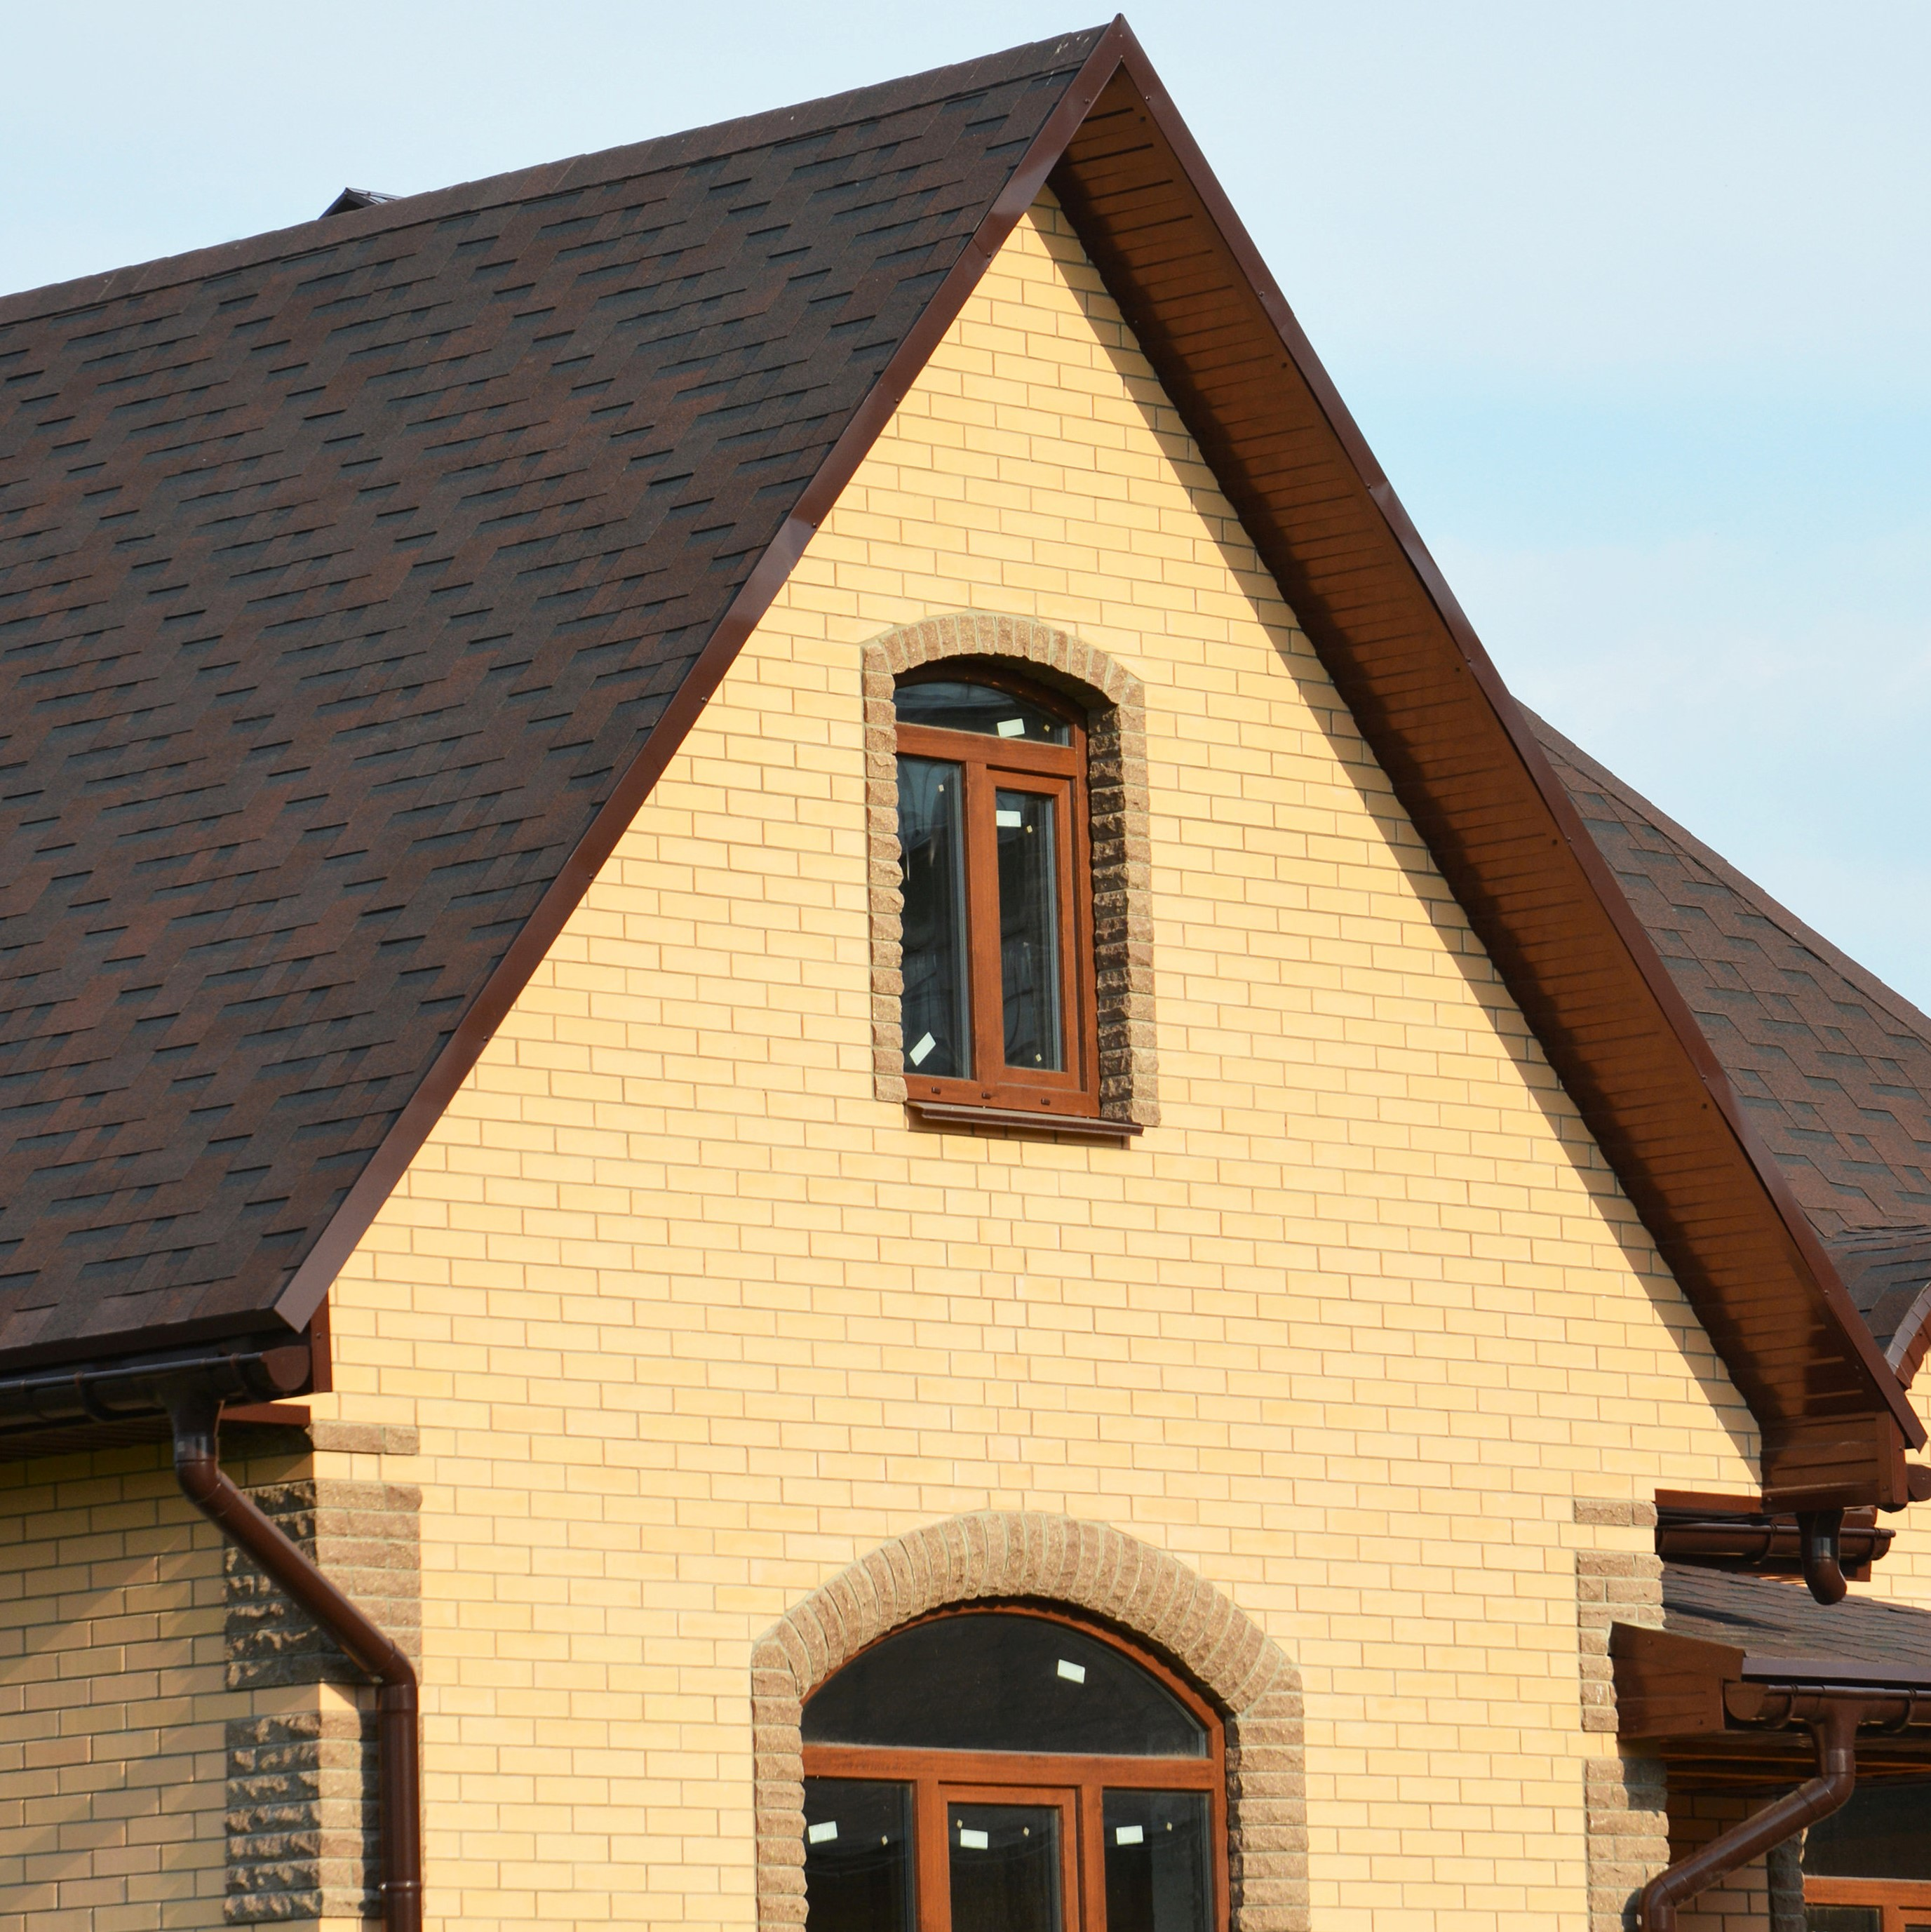 The front of a new home that has a fresh roof installed.